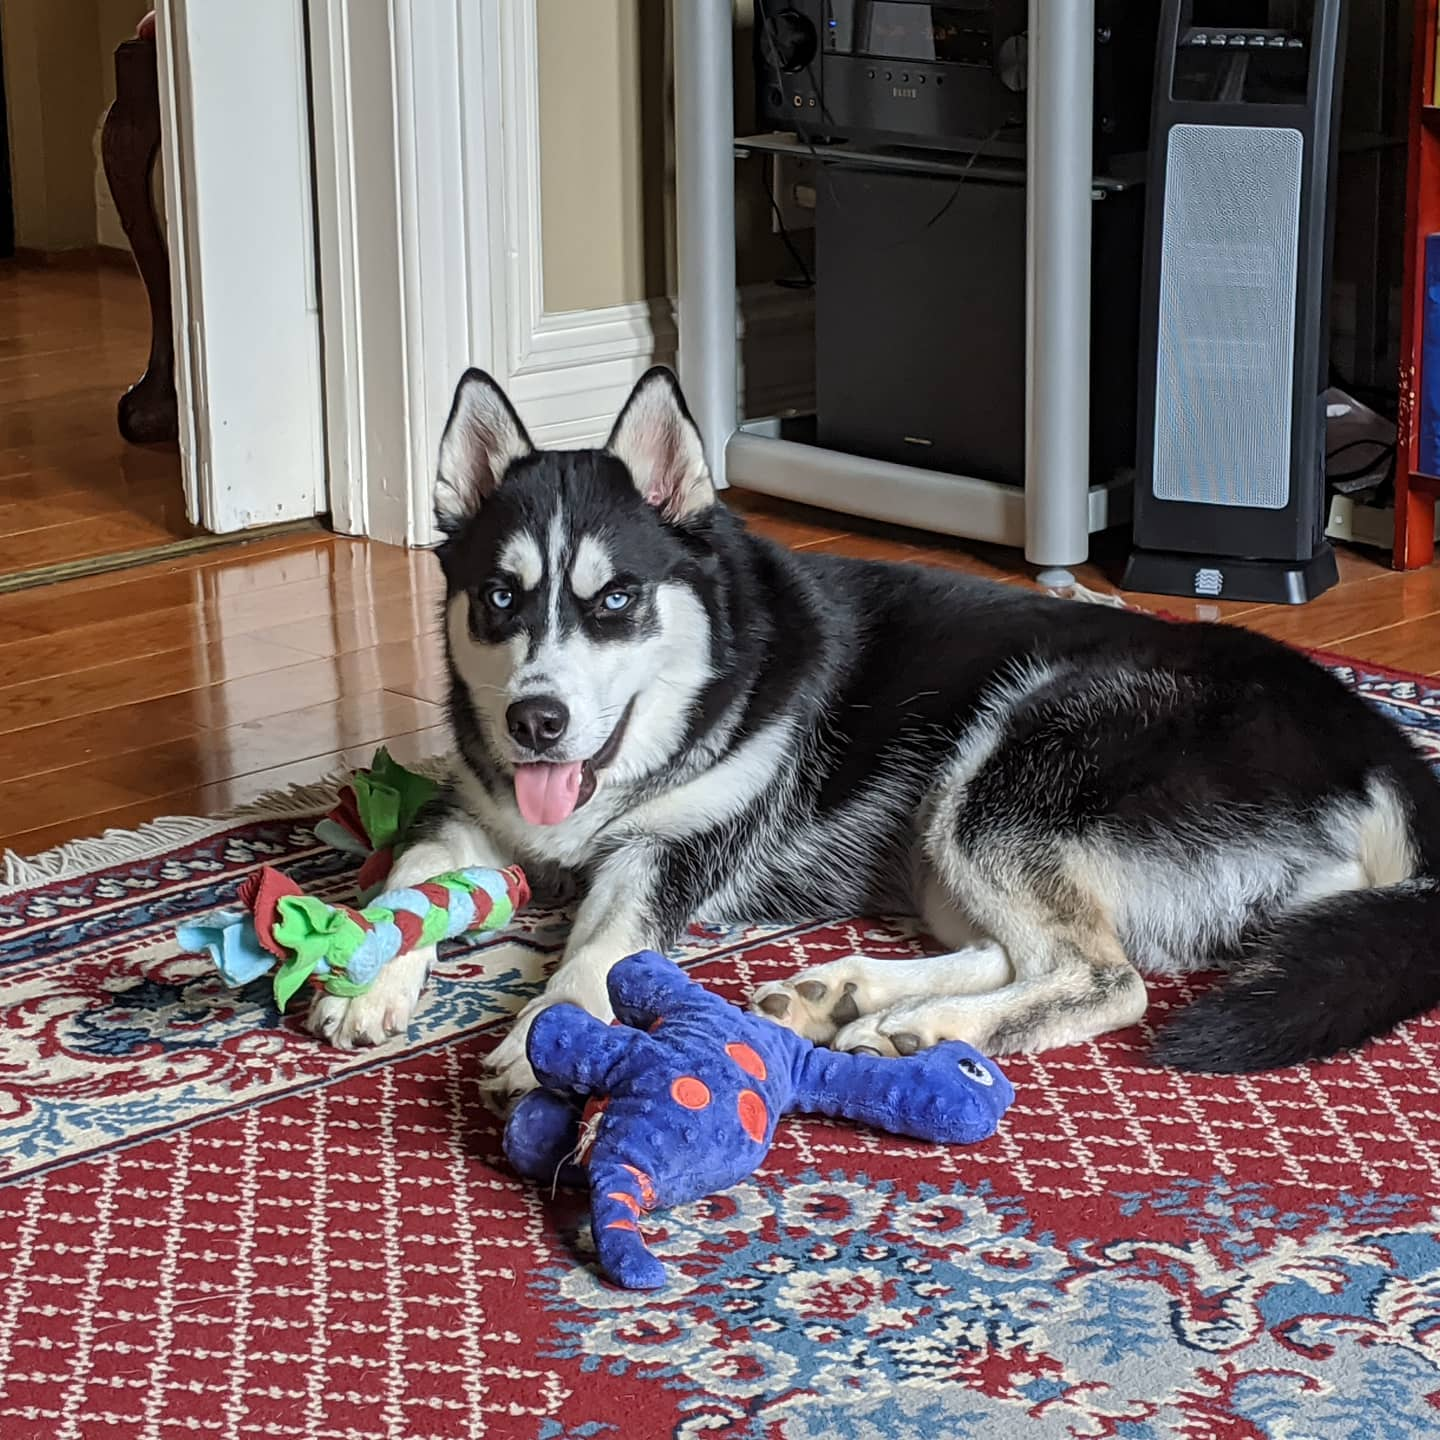 My little Smaug with his toys over here... #stlnanuq #huskiesofinstagram #siberianhusky